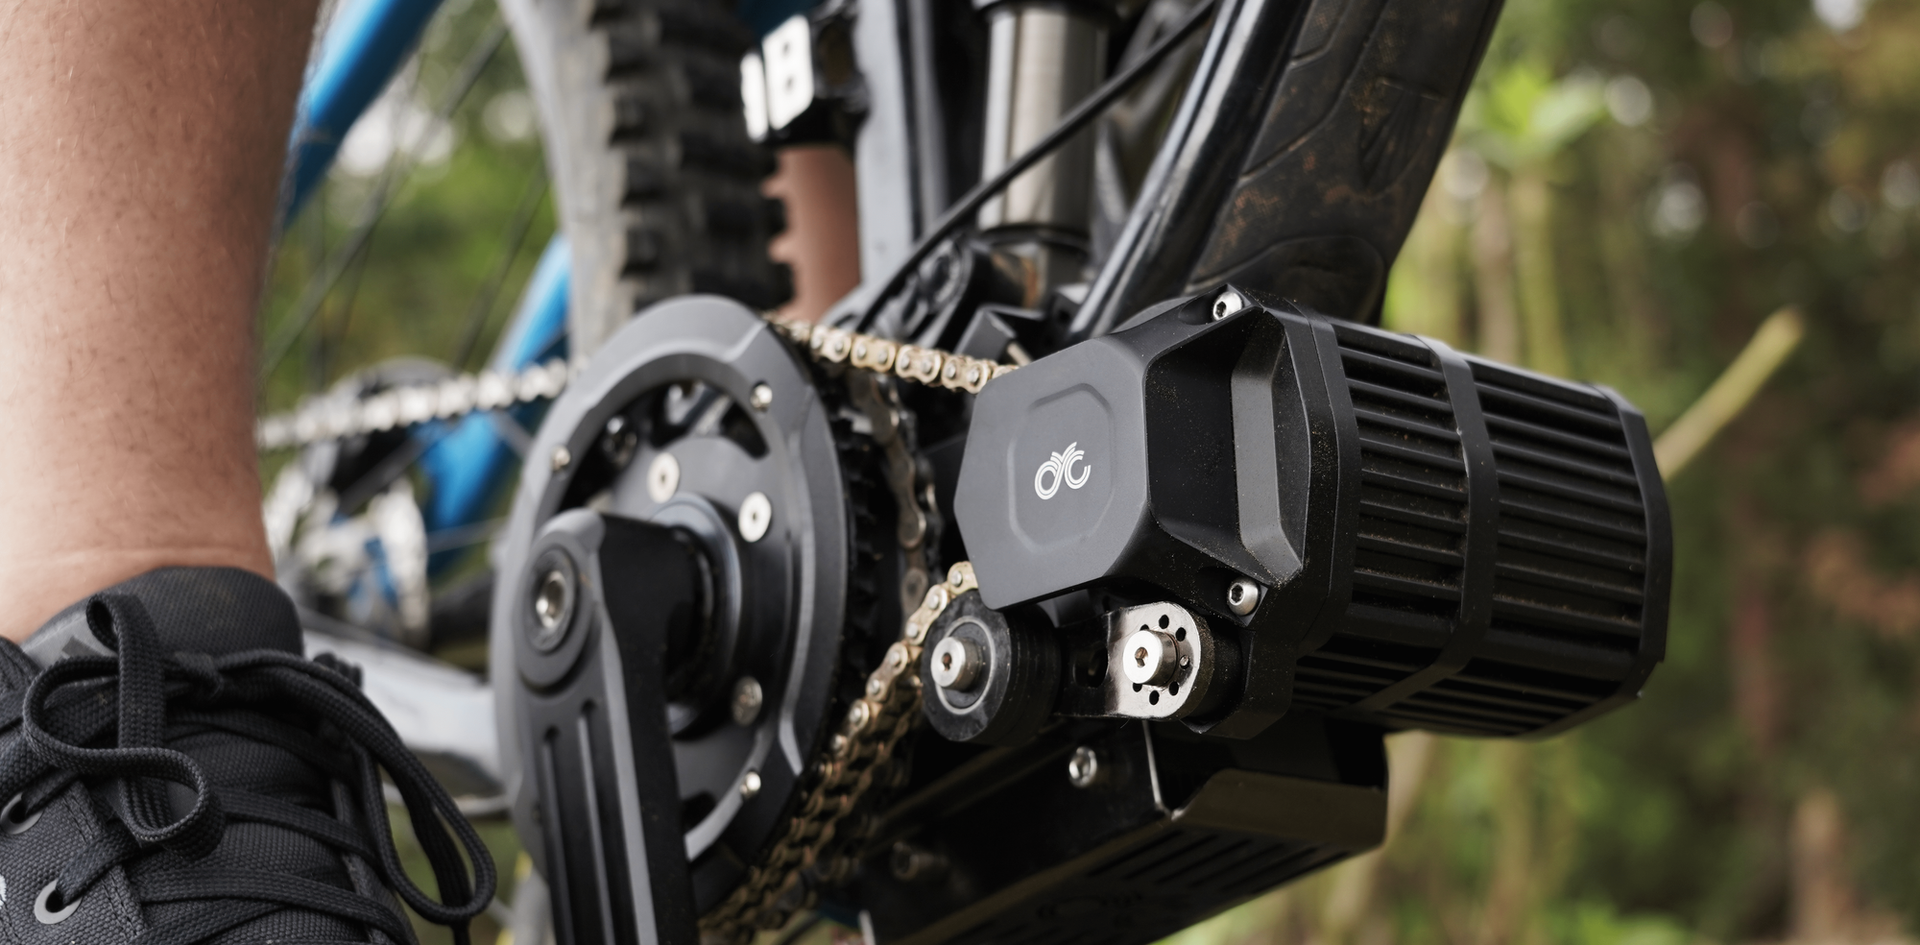 CYC X1 Stealth ebike and emtb mid drive conversion kit